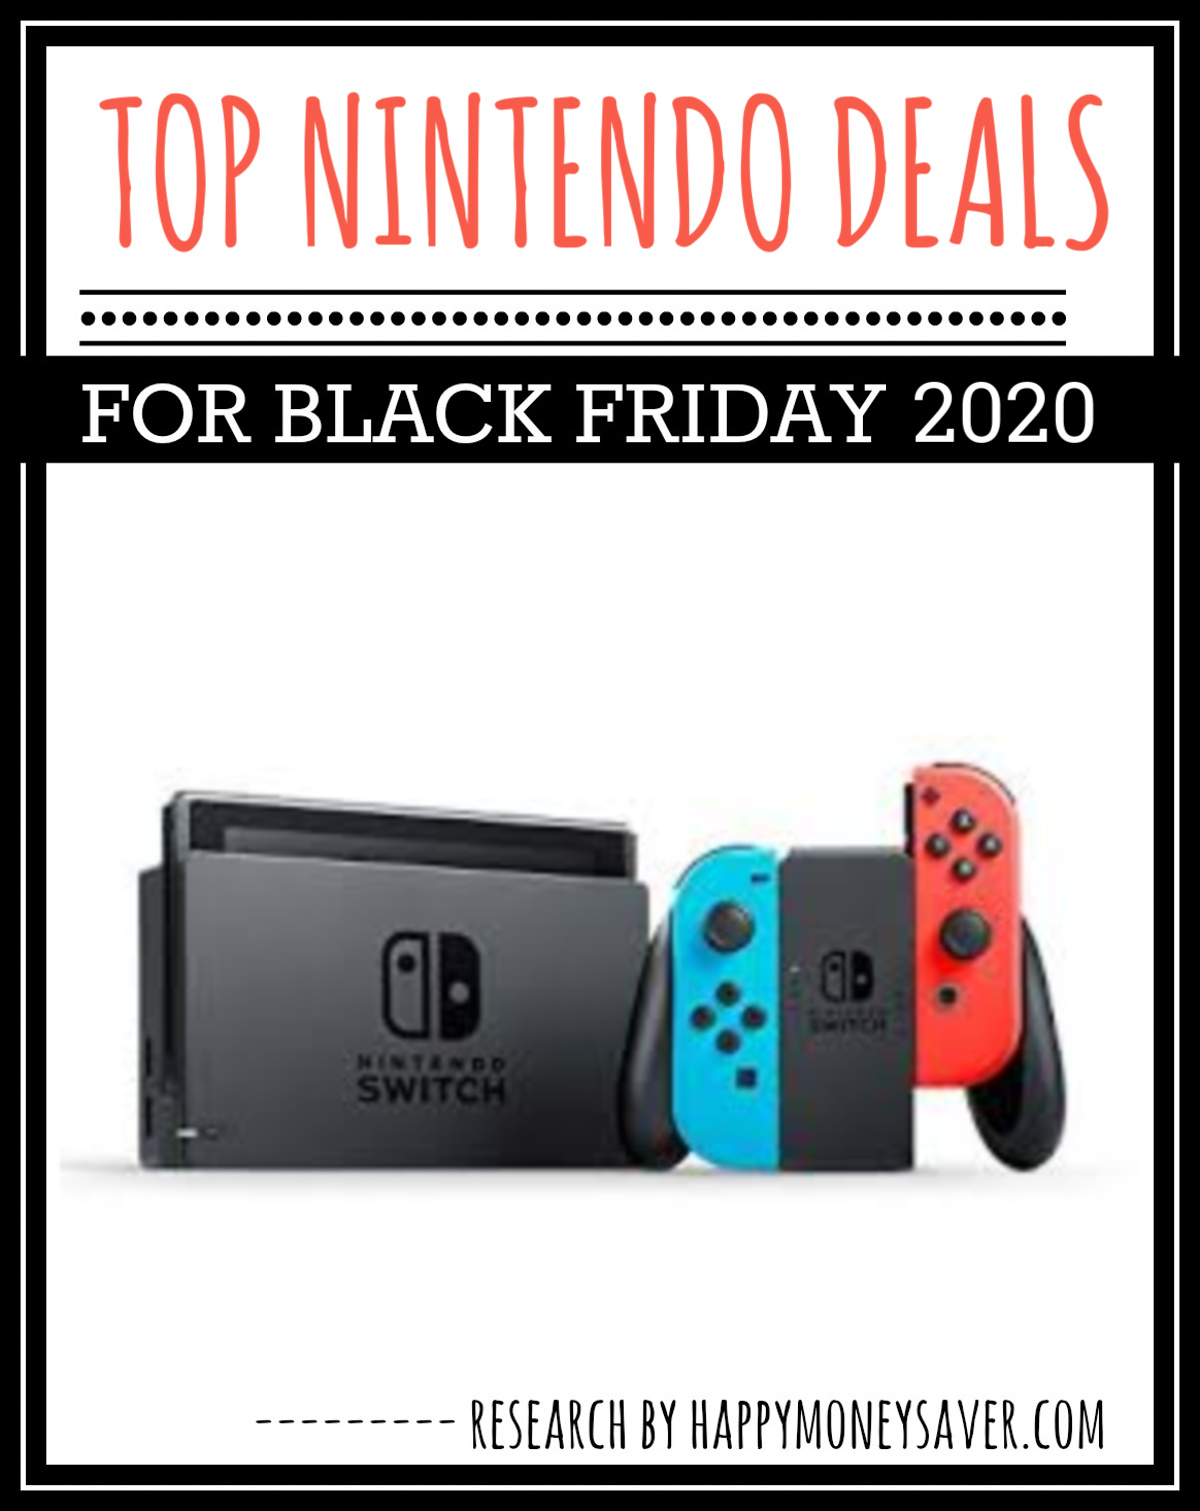 Nintendo switch on white background with words top ninetendo deals.